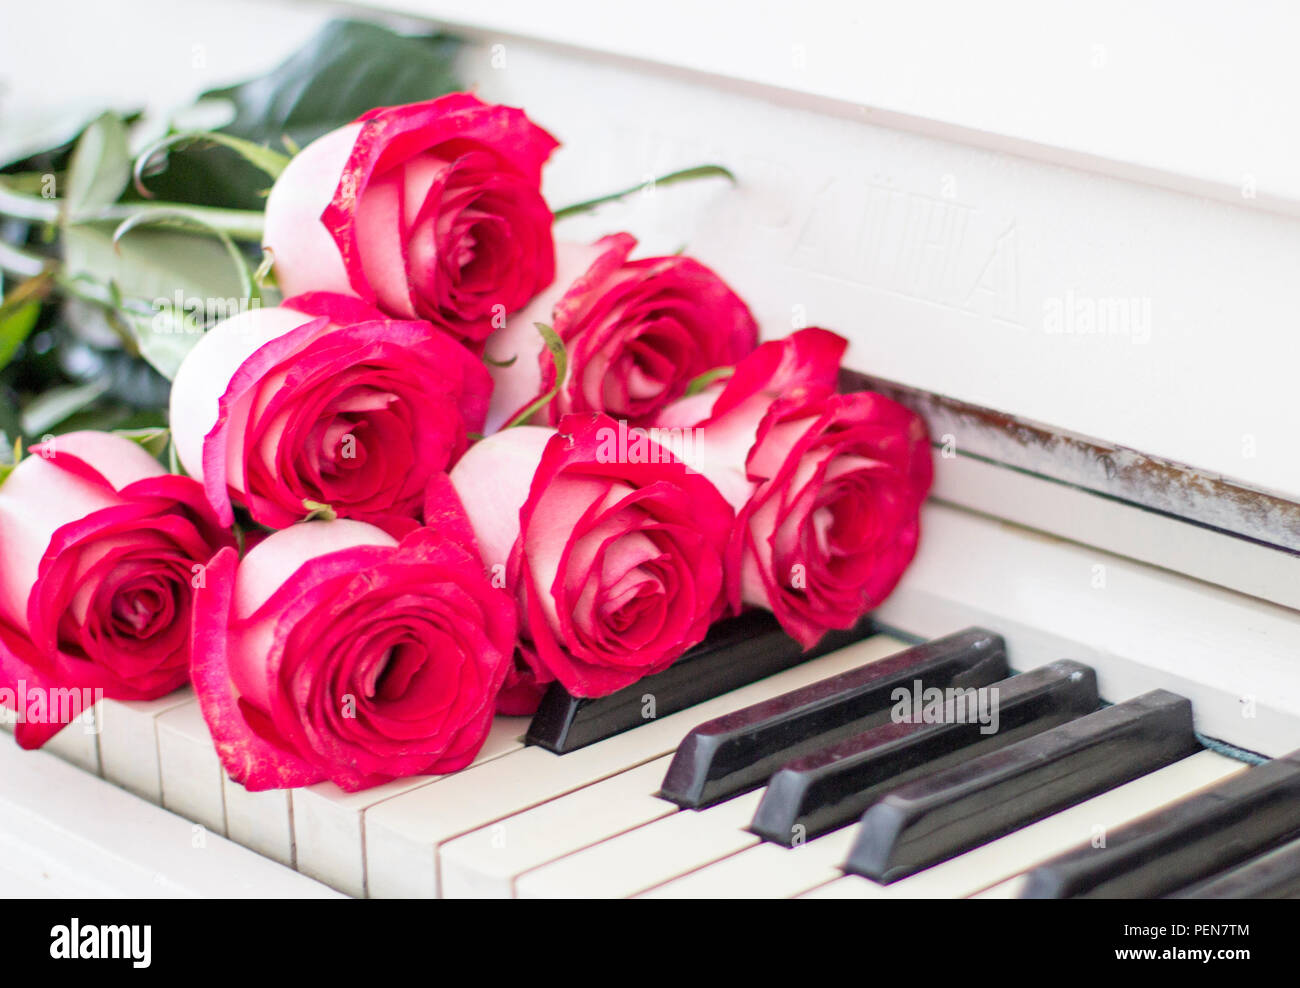 Piano Keys With Roses High Resolution Stock Photography And Images Alamy